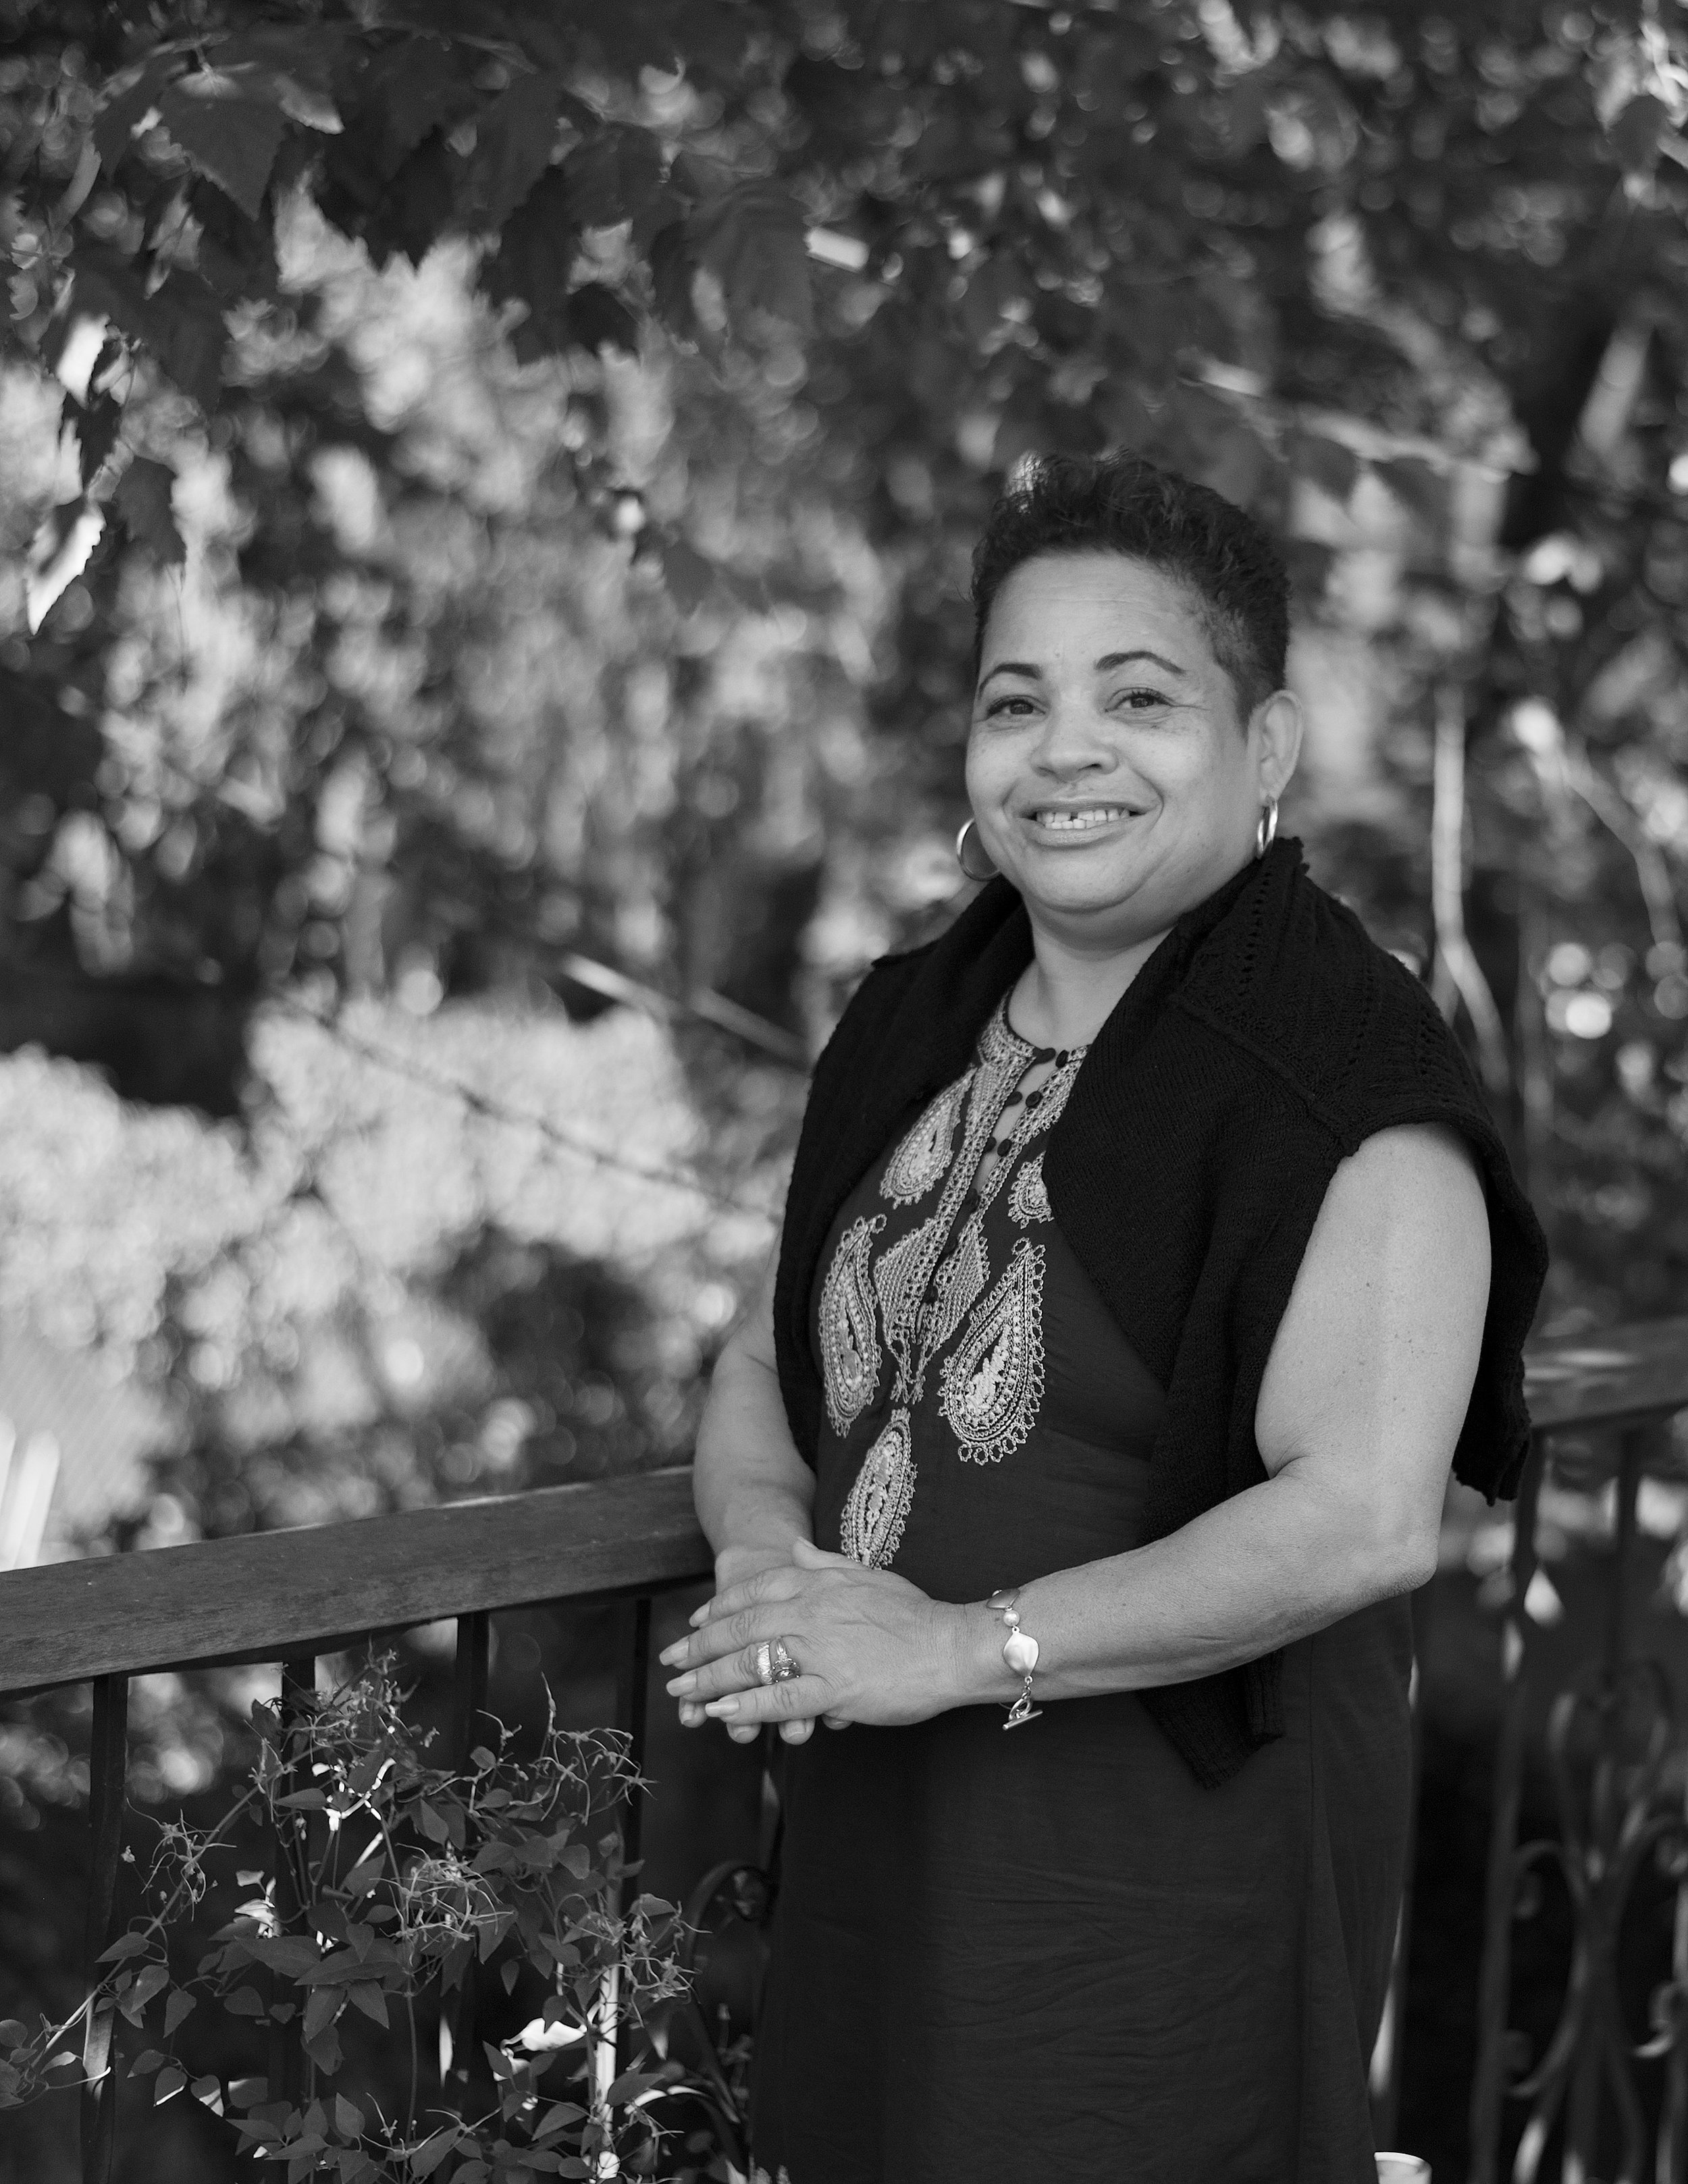 """AWILDA, """"WINDY,"""" 55. Served 10 years. Released: 1994.   Judy believed in me and pushed me to get an education and to dream big. I ended up getting my B.A. and then my M.S.W. and I have taken what I learned from Judy out into the world and have been able to share her wisdom with hundreds of my own clients over the years."""